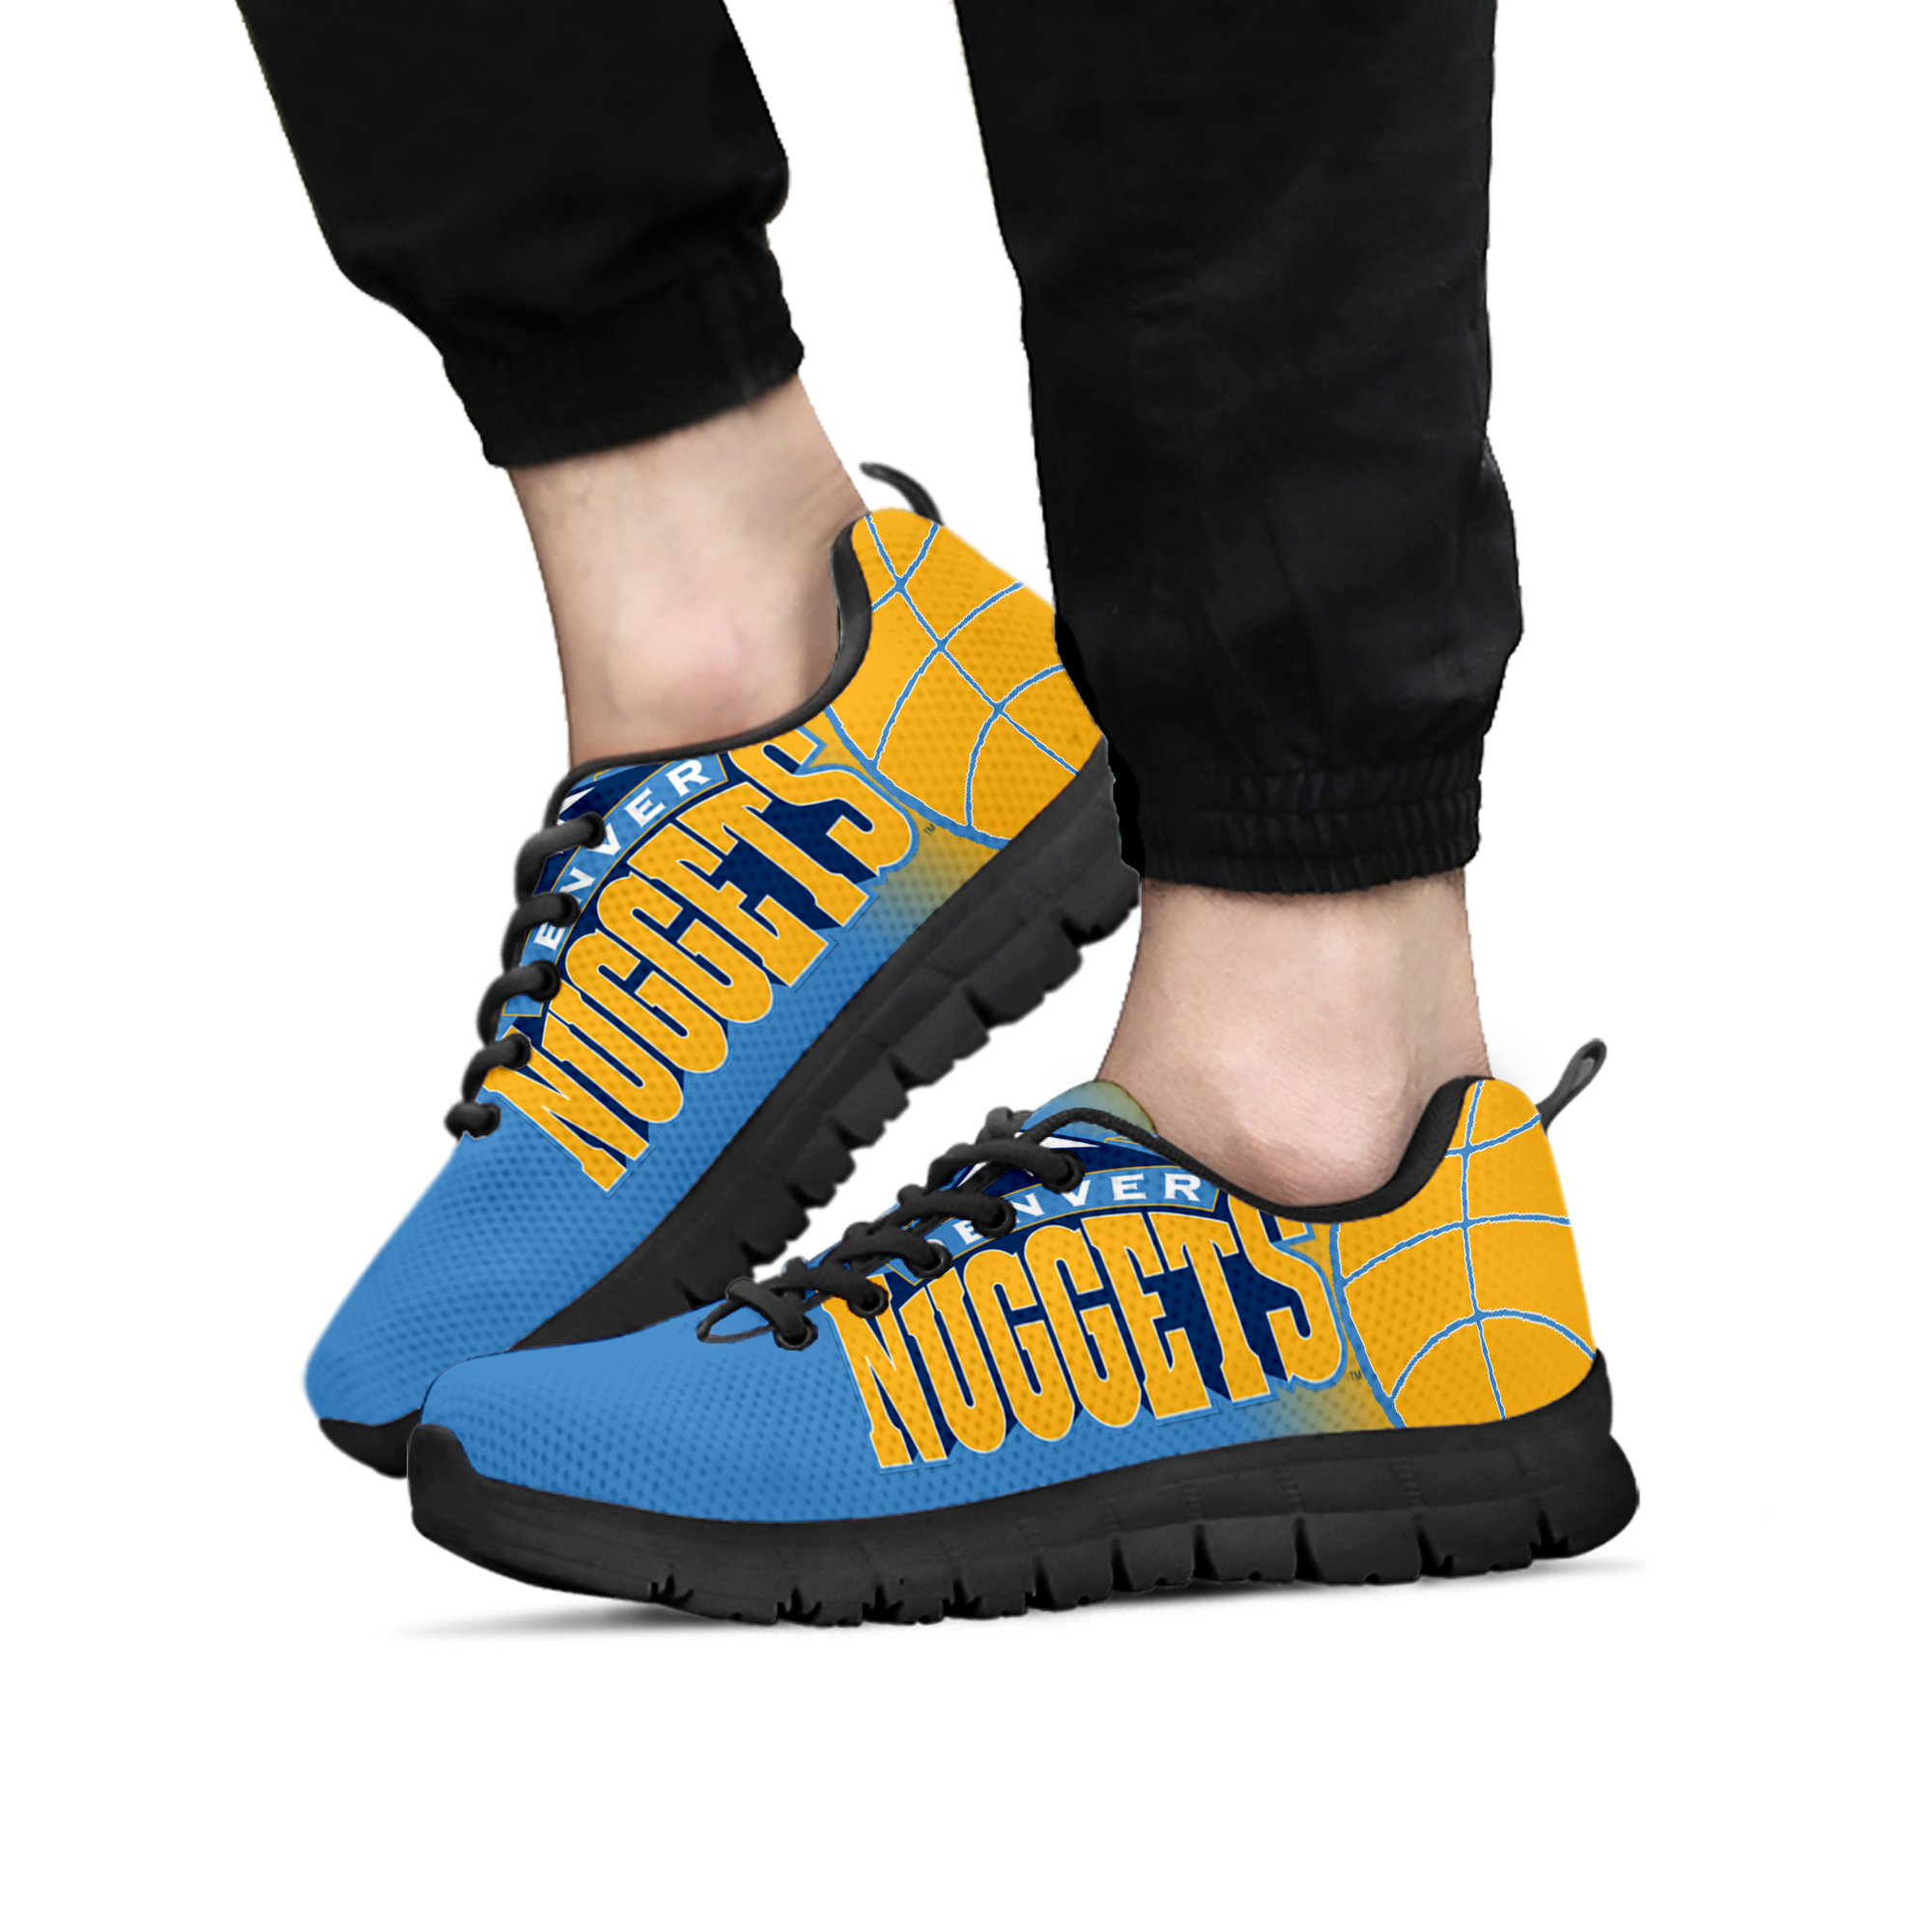 7baf1c44149d3 Denver Nuggets fan custom unofficial running shoes/sneakers/trainers -  ladies, Mens, Kids sizes Fan, Collector, basketball gift